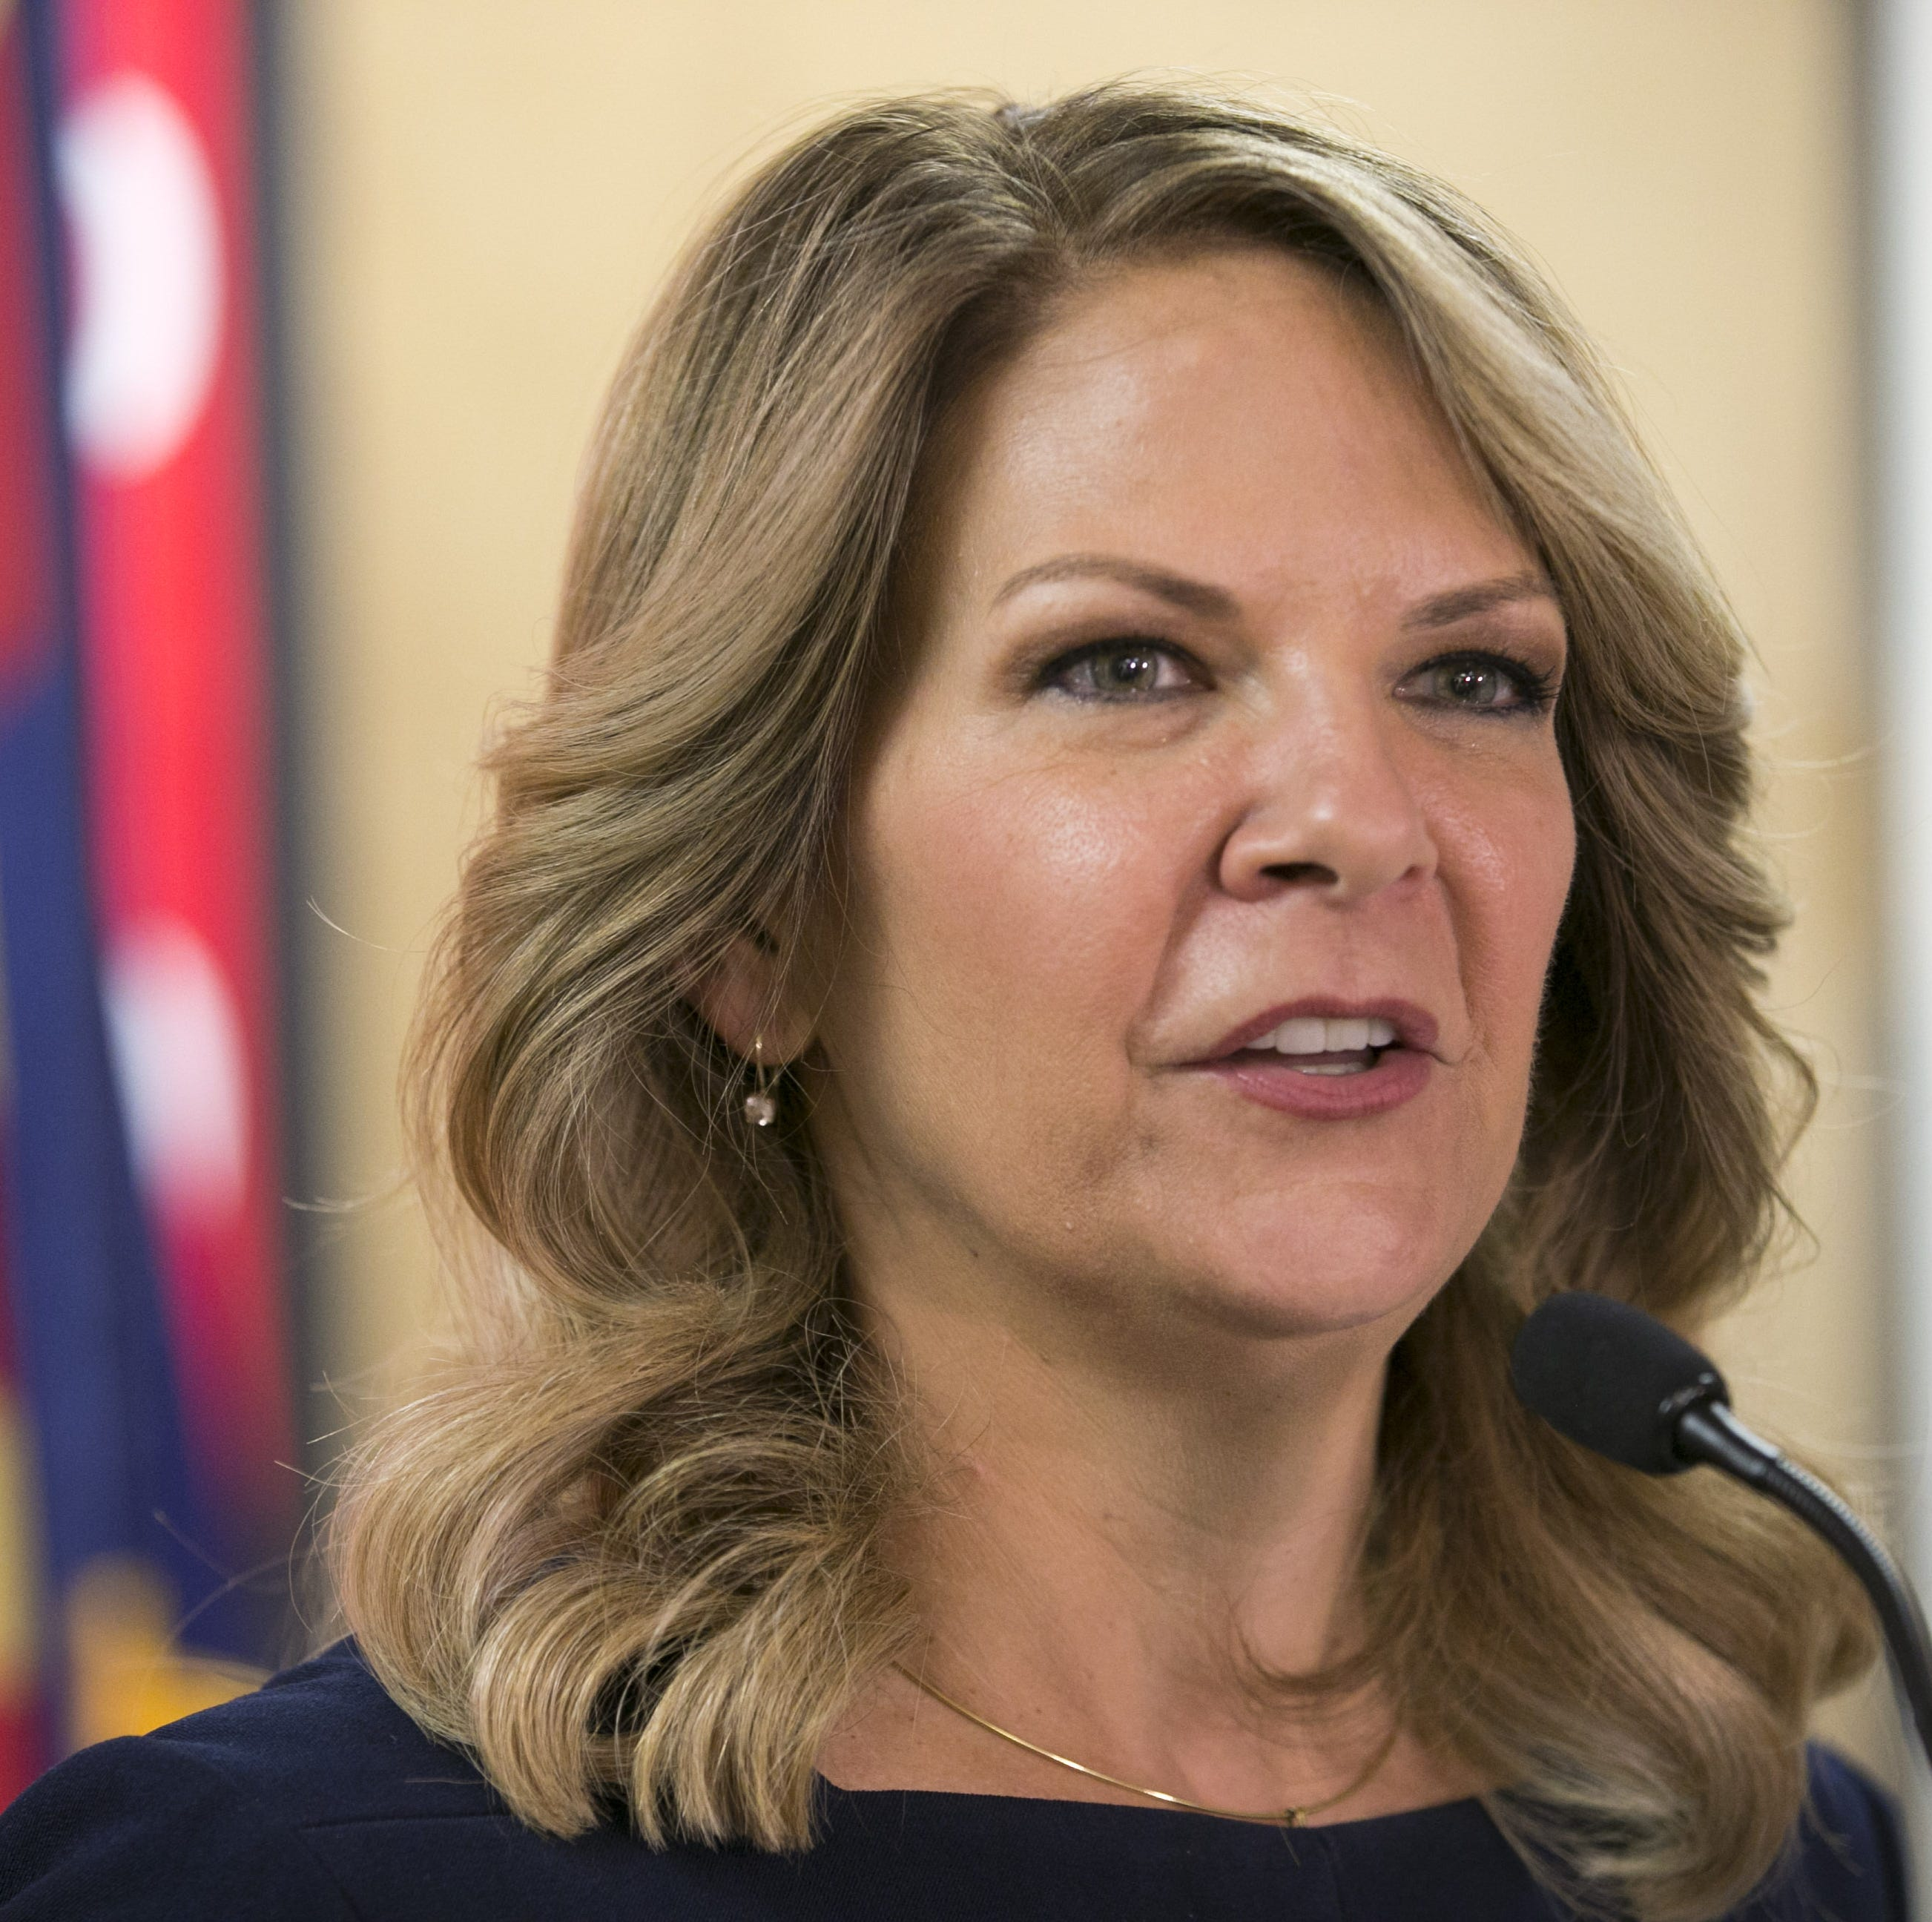 Dr. Kelli Ward, who is vying for the GOP U.S. Senate nomination, addresses the media at her campaign headquarters in Tempe on Aug. 27, 2018.